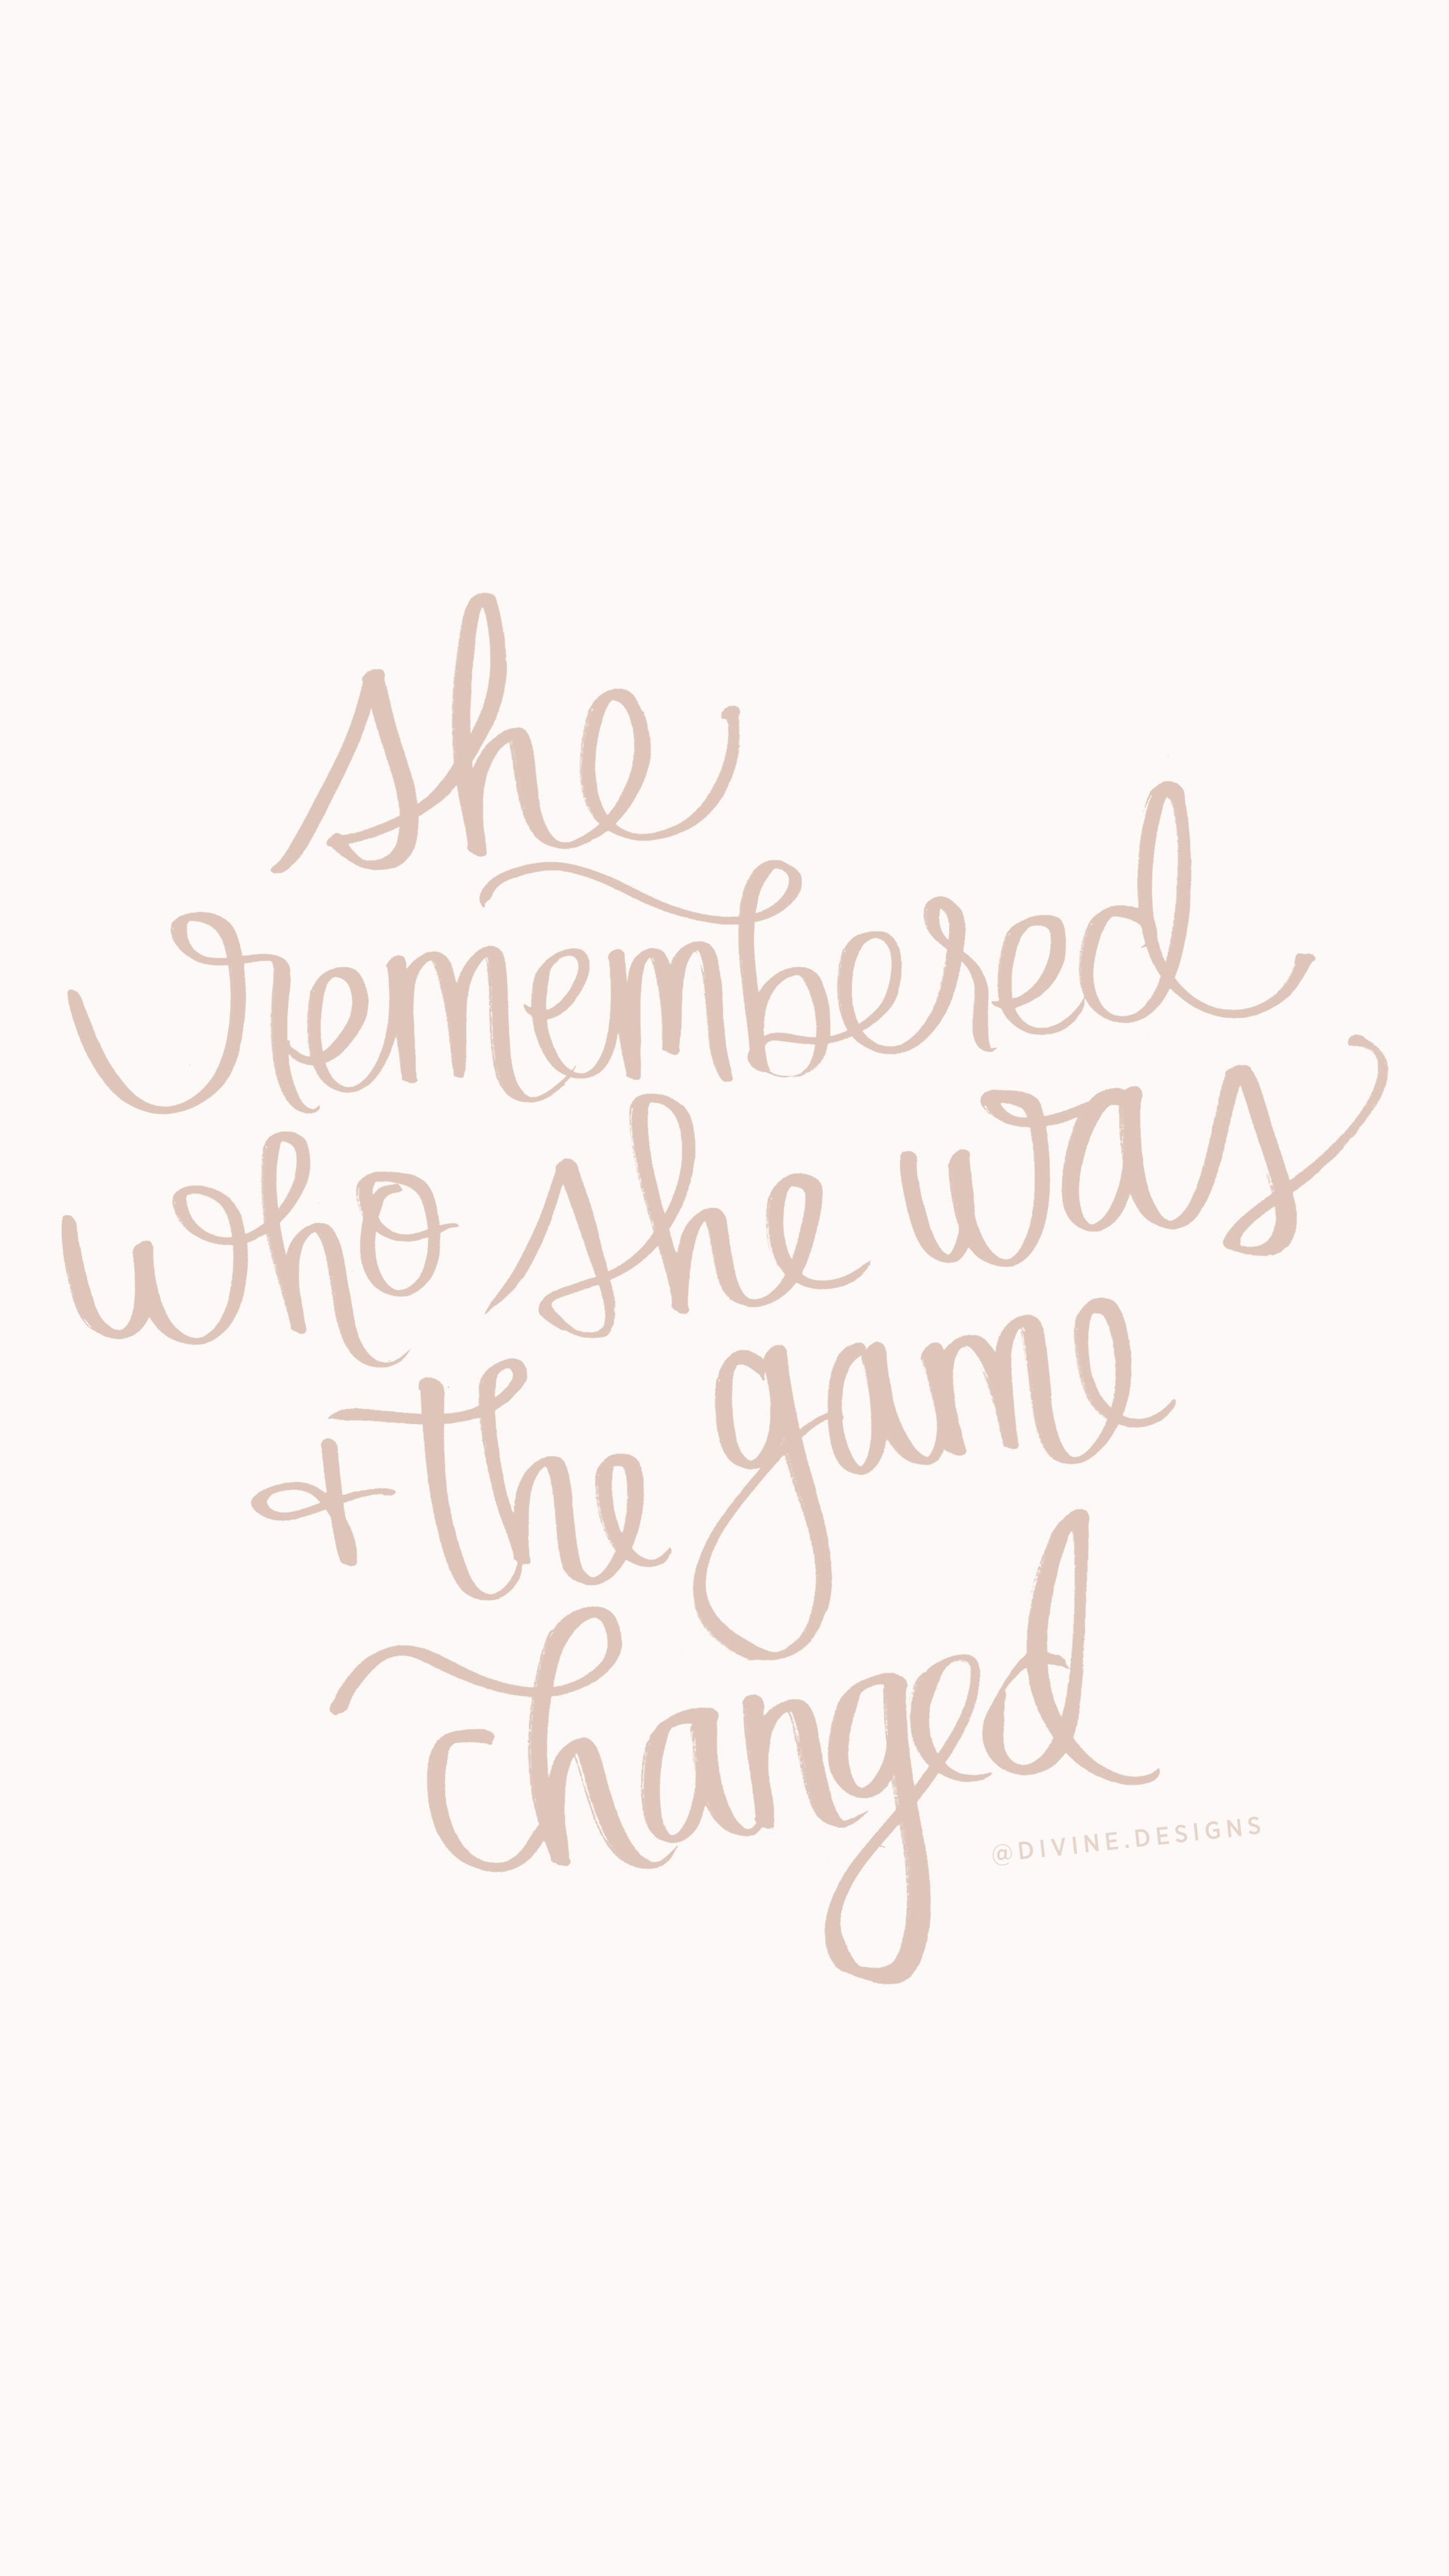 She Remembered Who She Was And The Game Changed This Quote